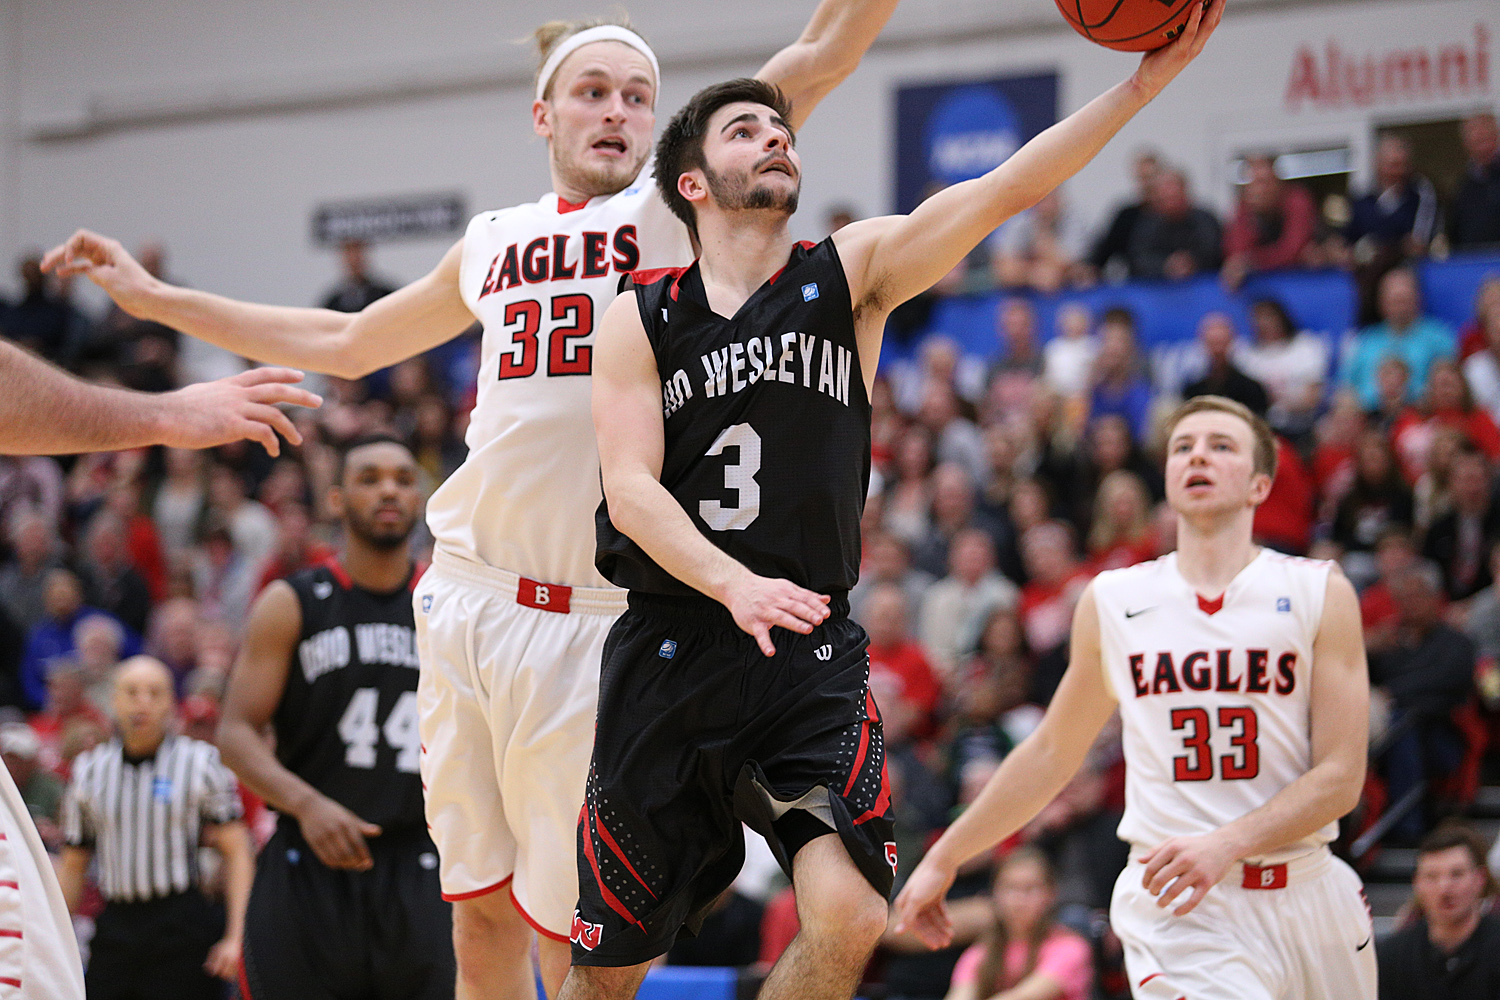 Nate Axelrod (seen last year against Benedictine in NCAA tournament) and Ohio Wesleyan are off to a tough start to the season.